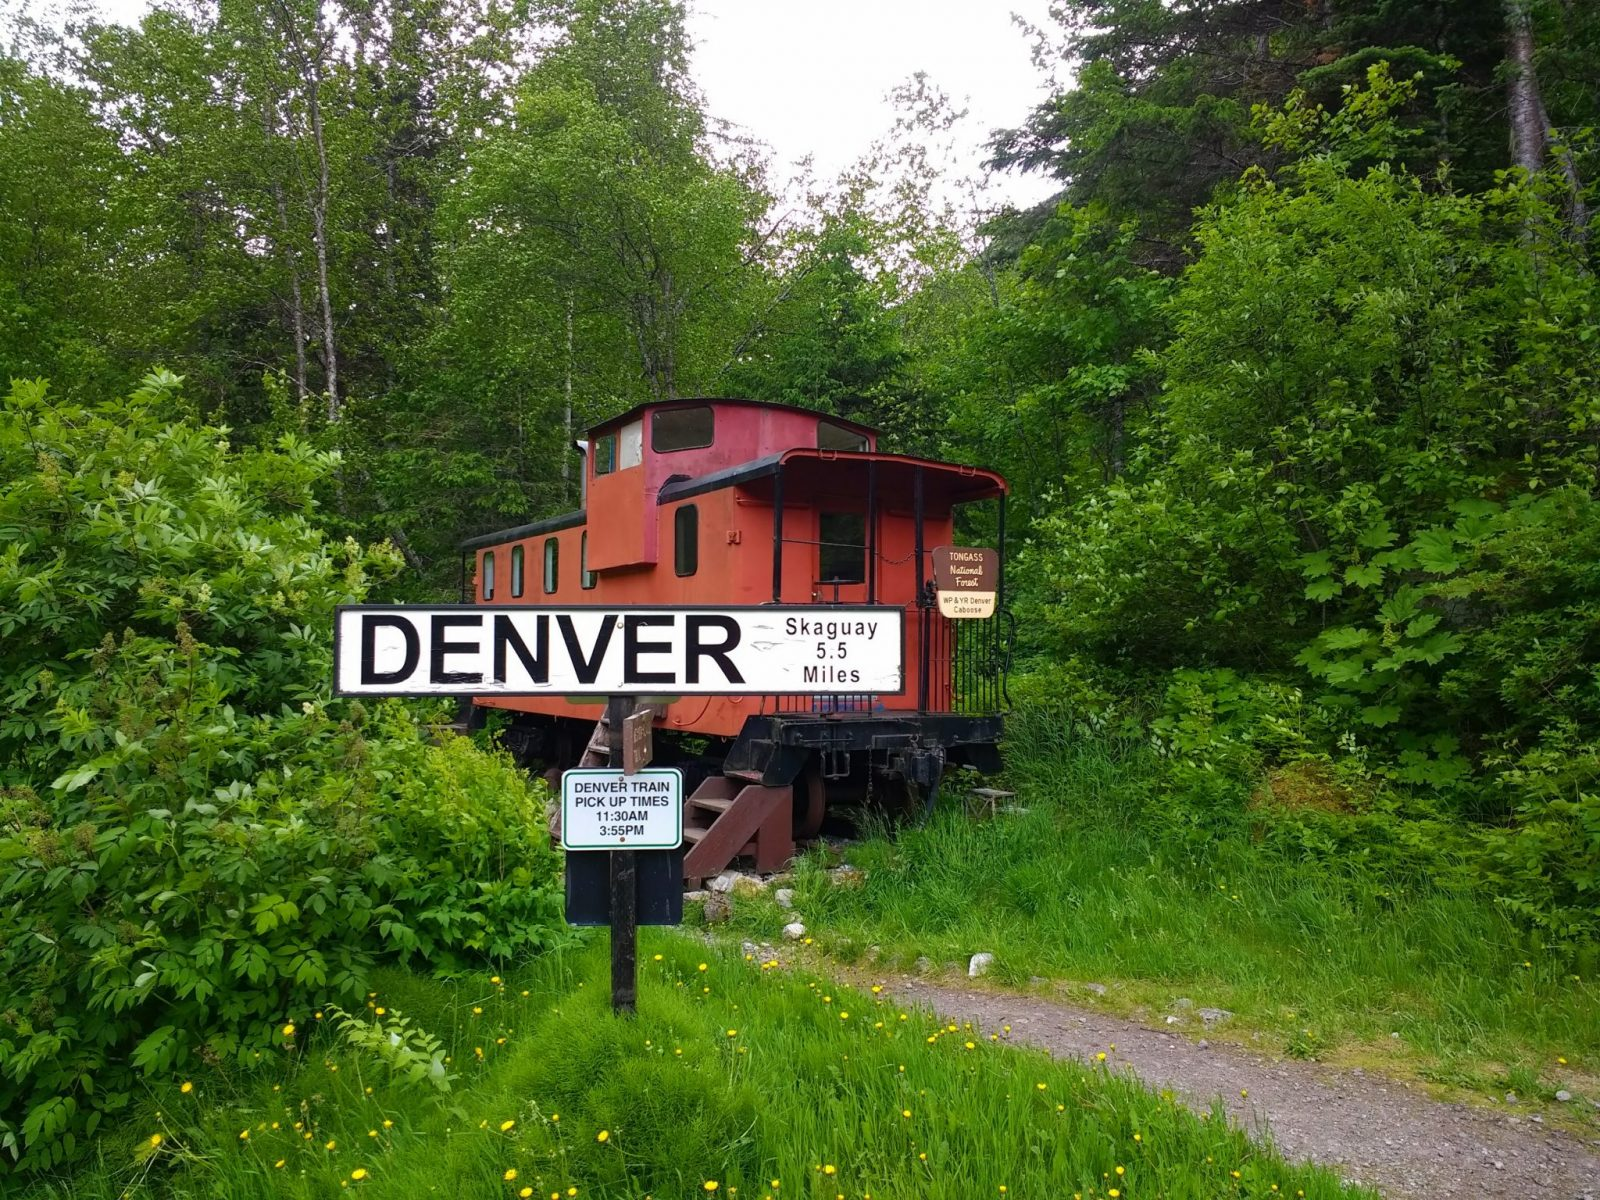 """A red train caboose next to a trail. A railroad sign says """"Denver"""" in the foreground. The sign and caboose are surrounded by green forest. For a unique camping experience in Alaska you can sleep in the caboose"""